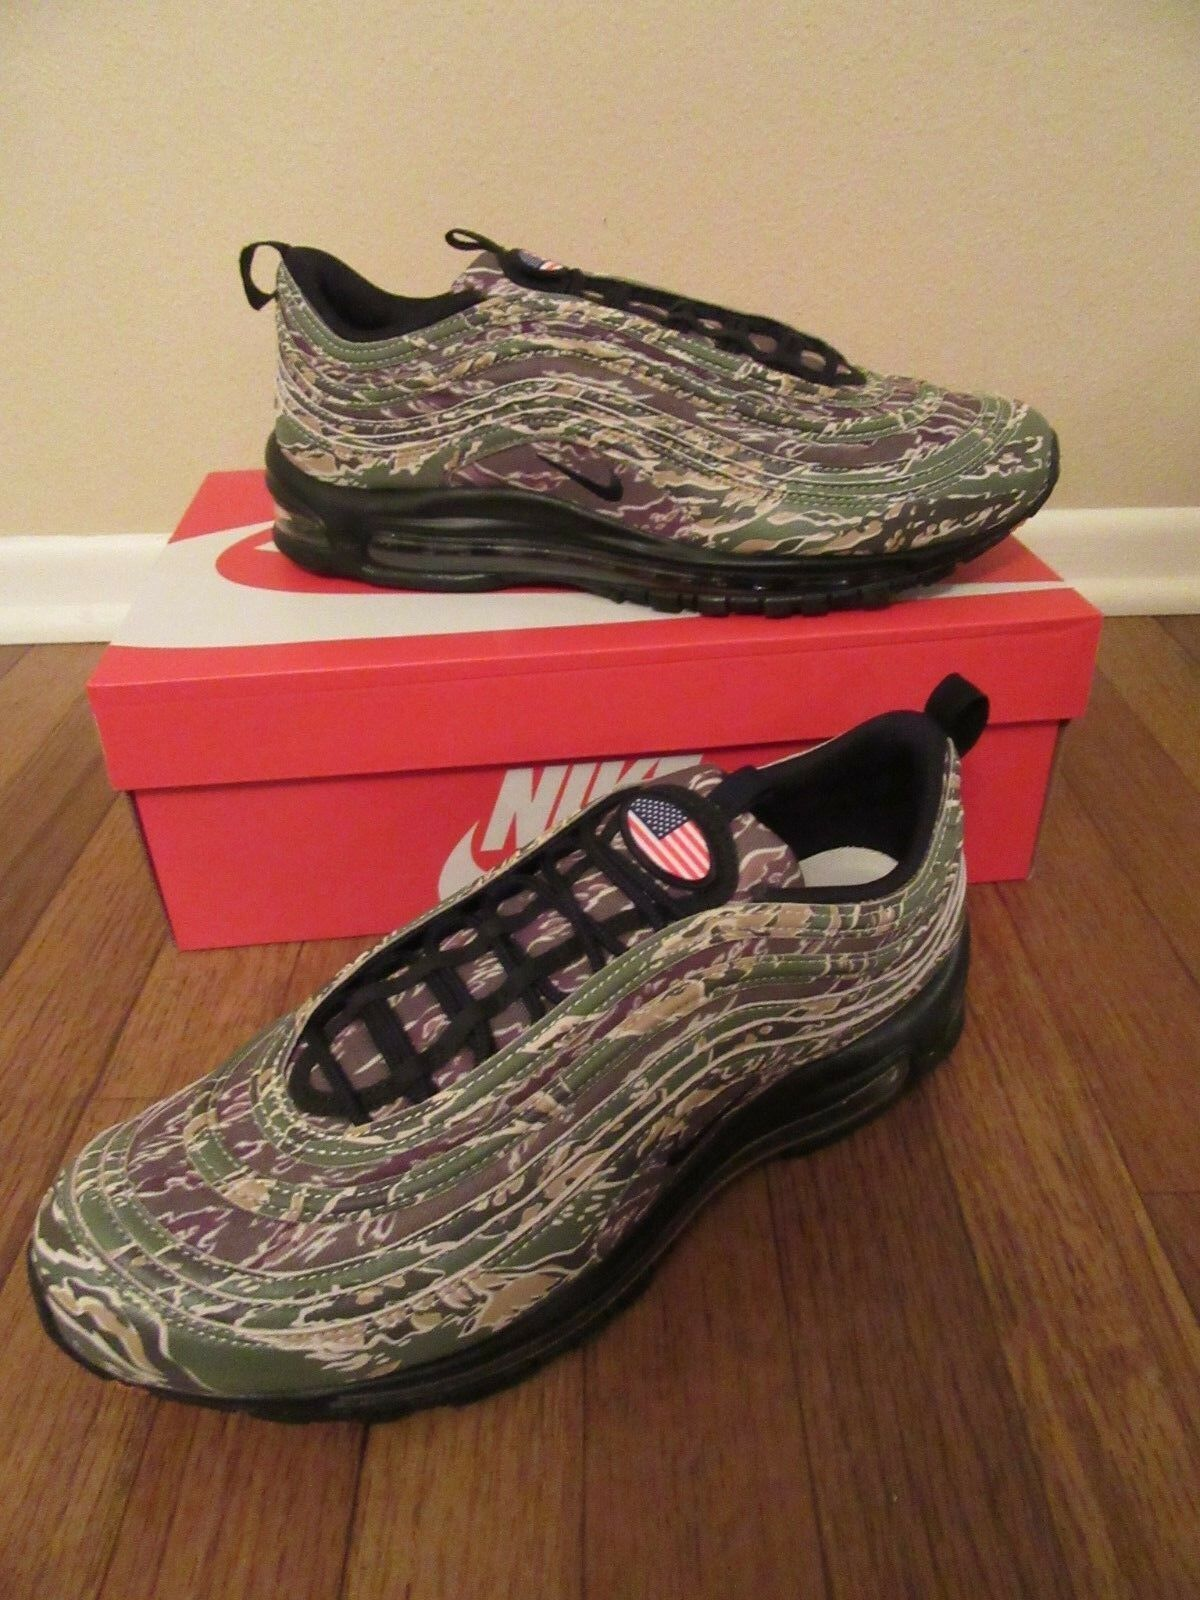 Nike Air Max 97 Premium QS USA Comfortable The most popular shoes for men and women